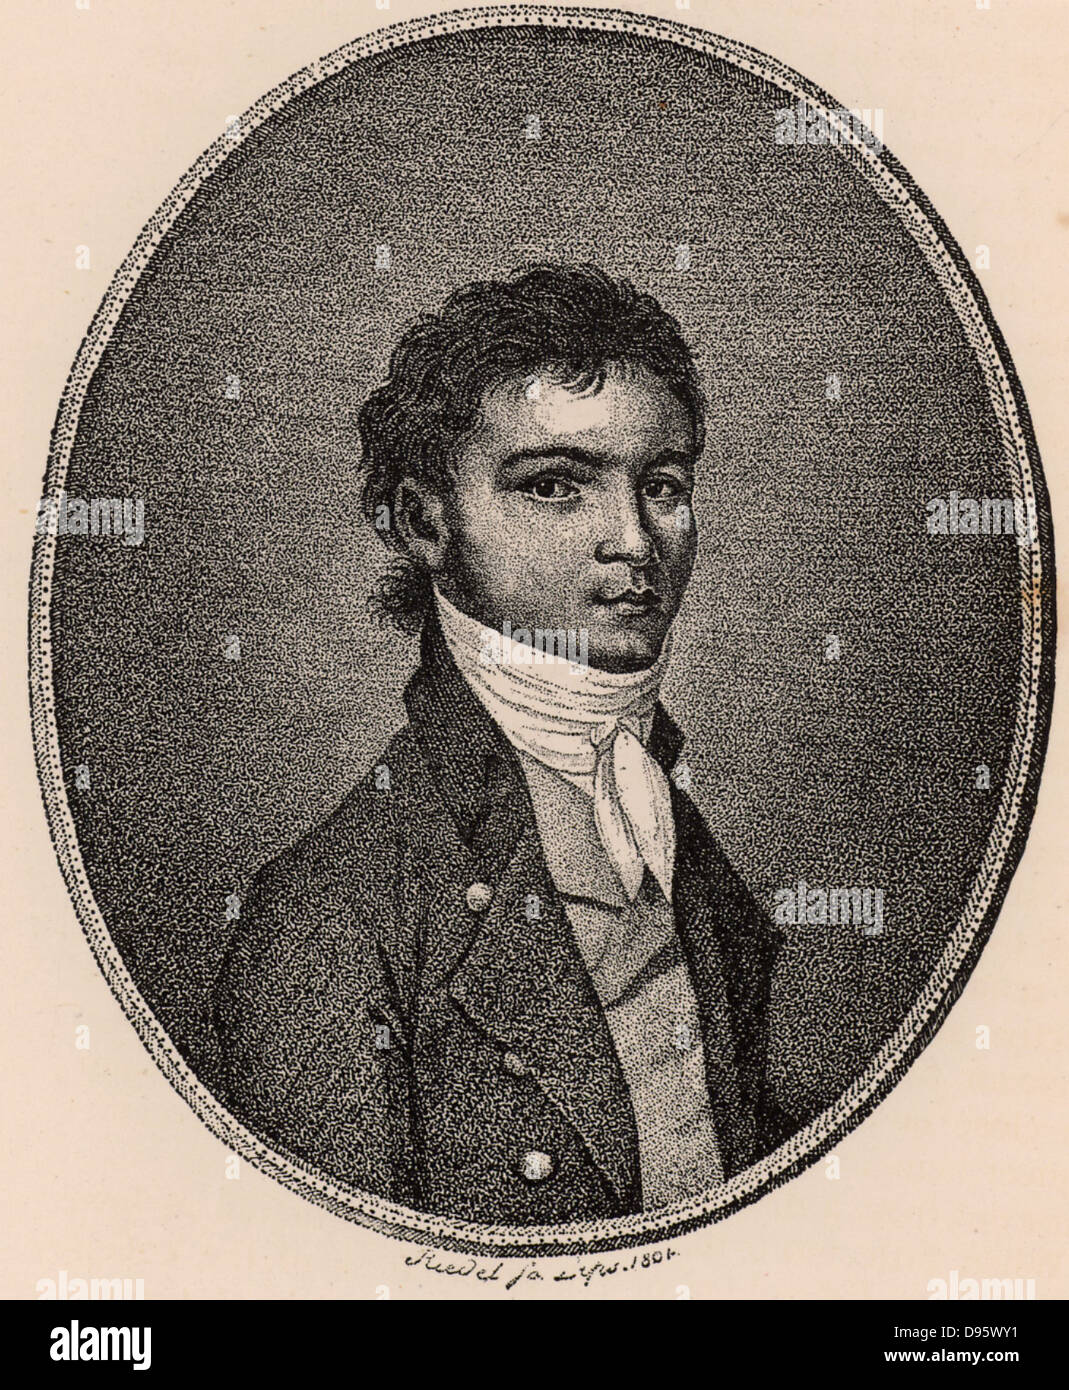 Ludwig van Beethoven (1770-1827) German composer, a bridge between the Classical and Romantic styles. Beethoven - Stock Image